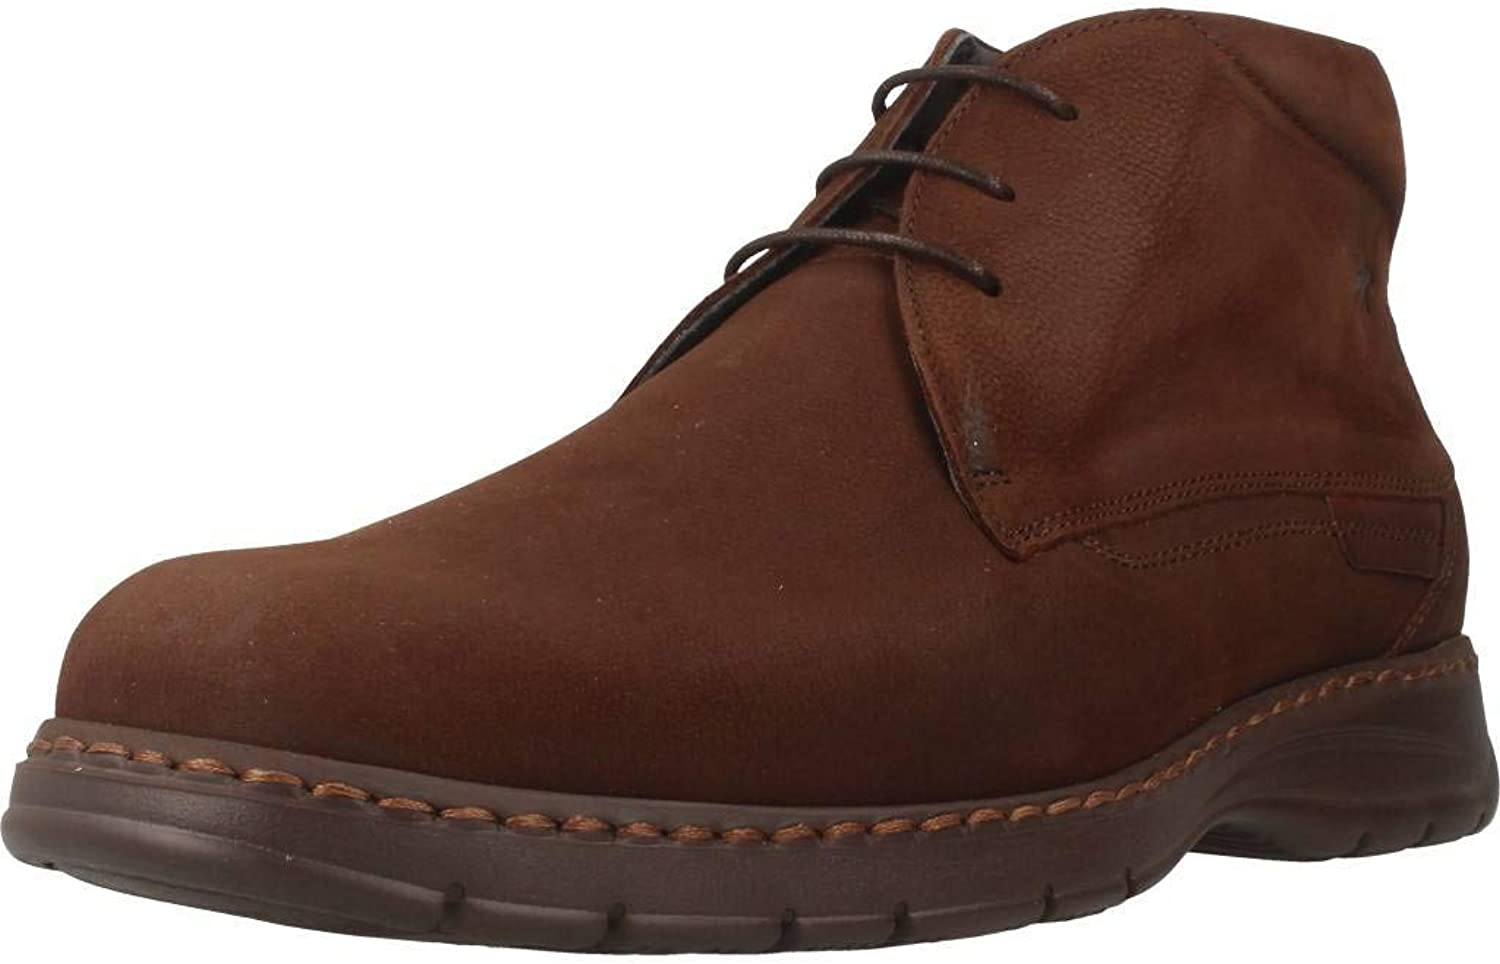 Fluchos Mens Boots, Colour Brown, Brand, Model Mens Boots CRONO Brown